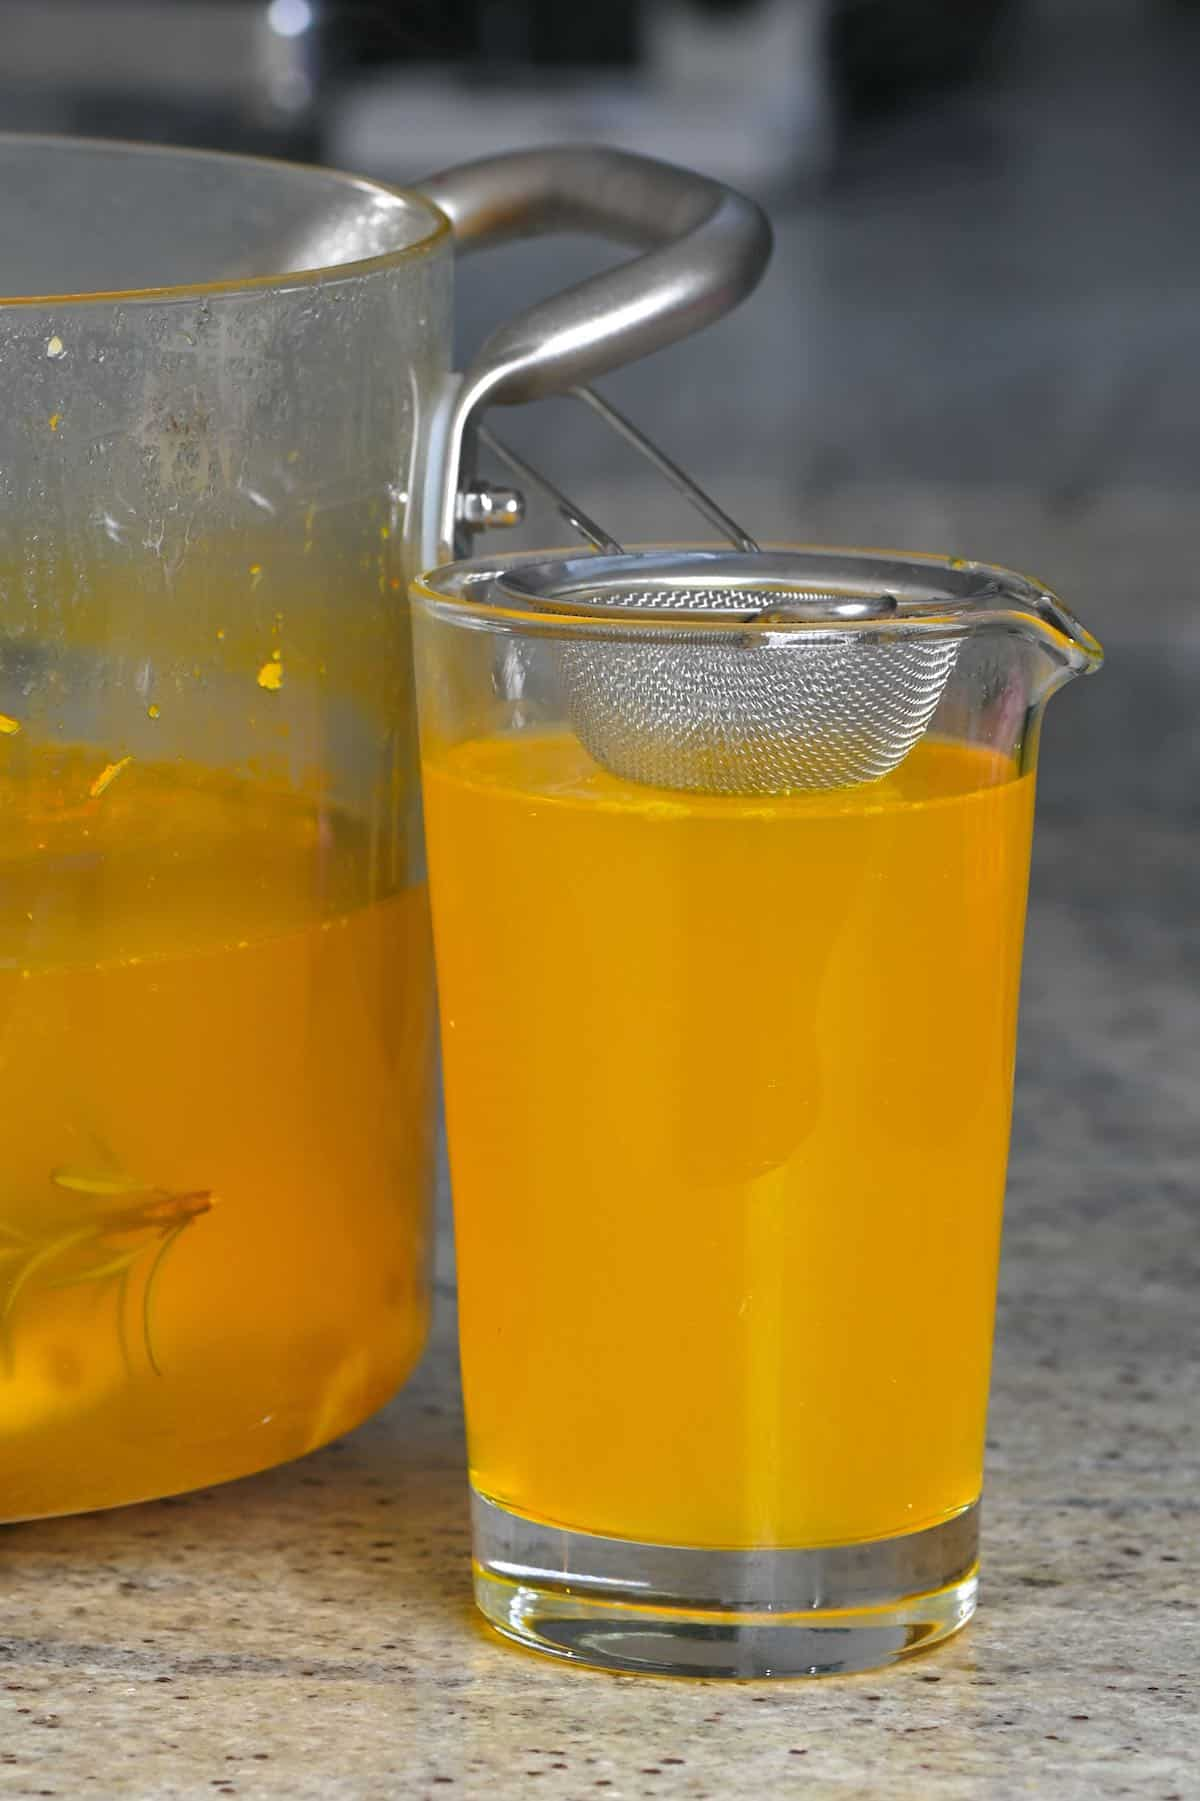 A jug with a small sieve filled with pineapple tea